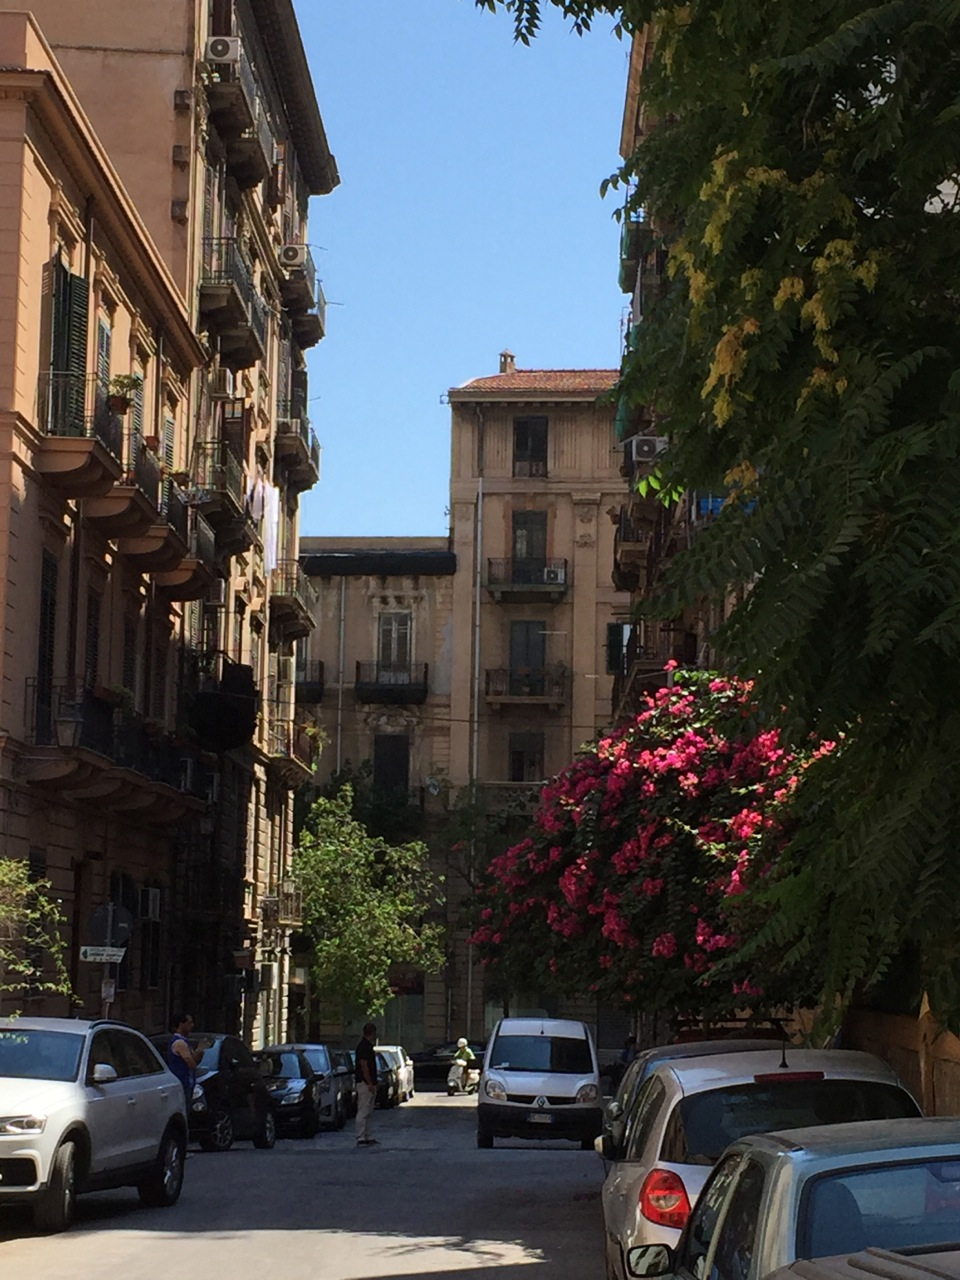 A city street in Palermo, Sicily.